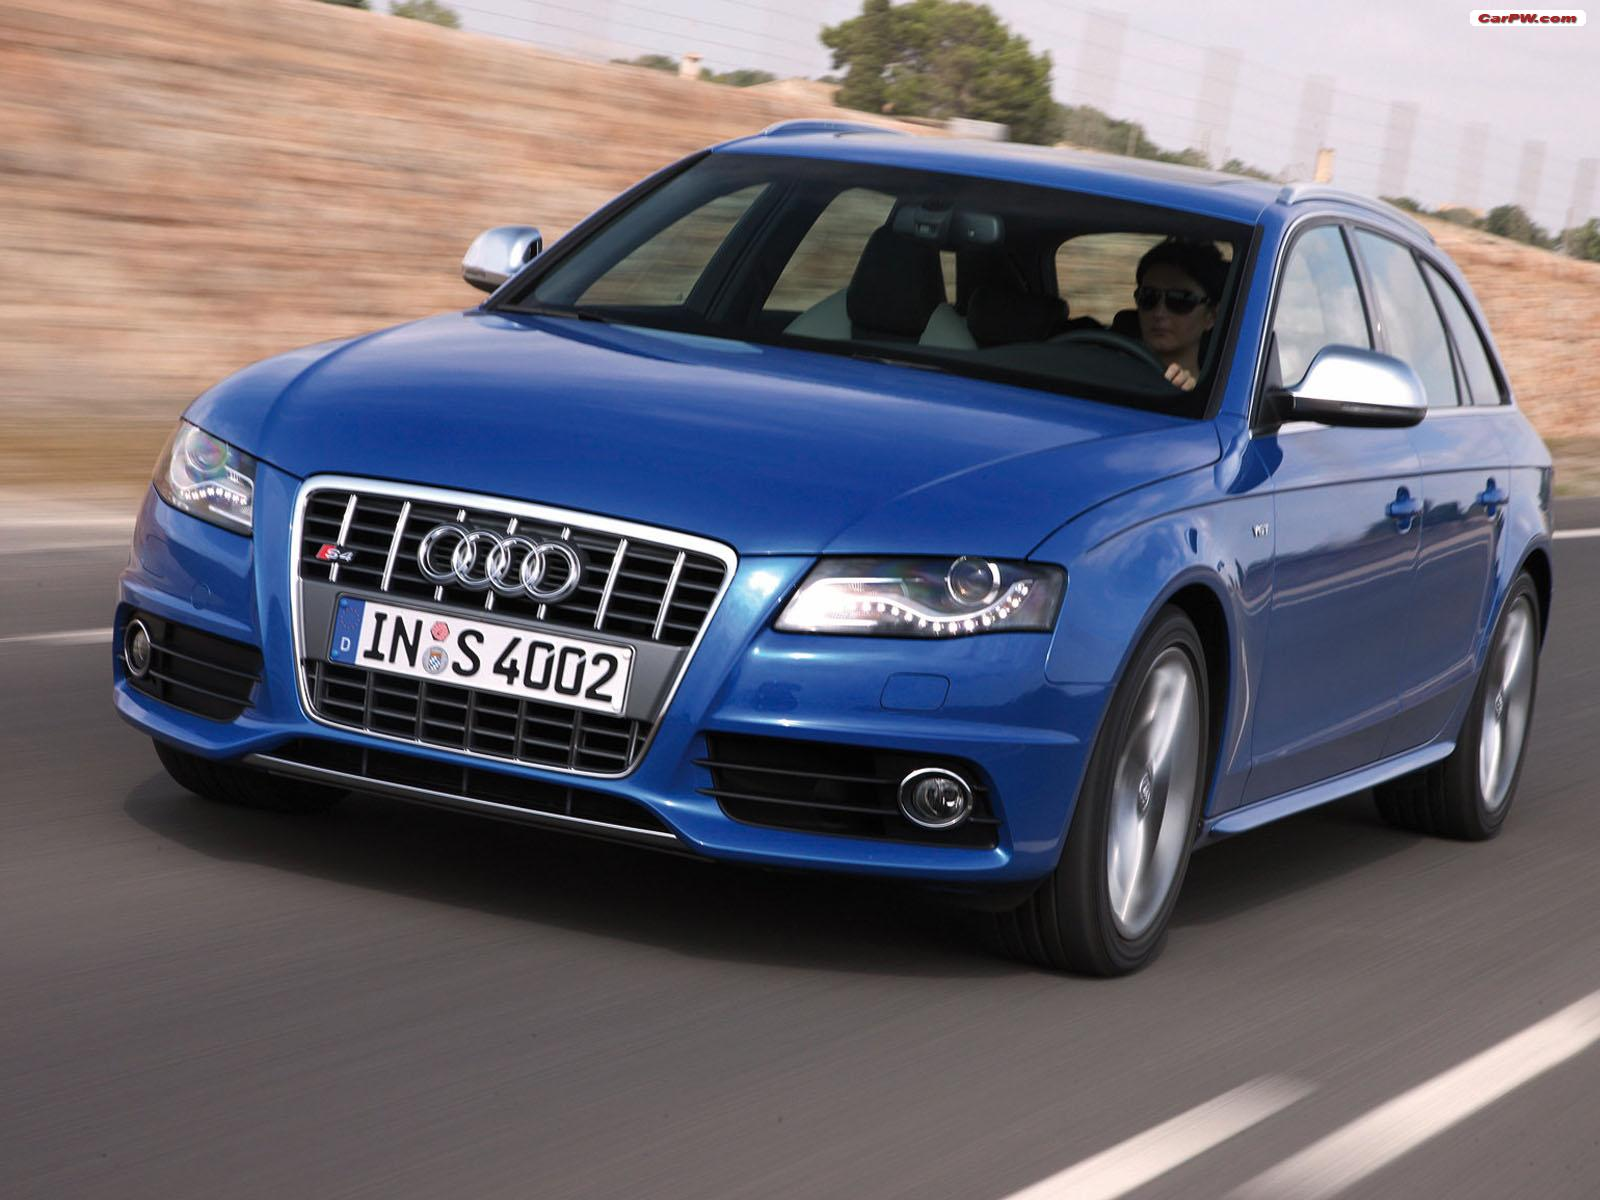 2009 Audi S4 Avant car wallpapers HD Wallpapers High Definition 1600x1200